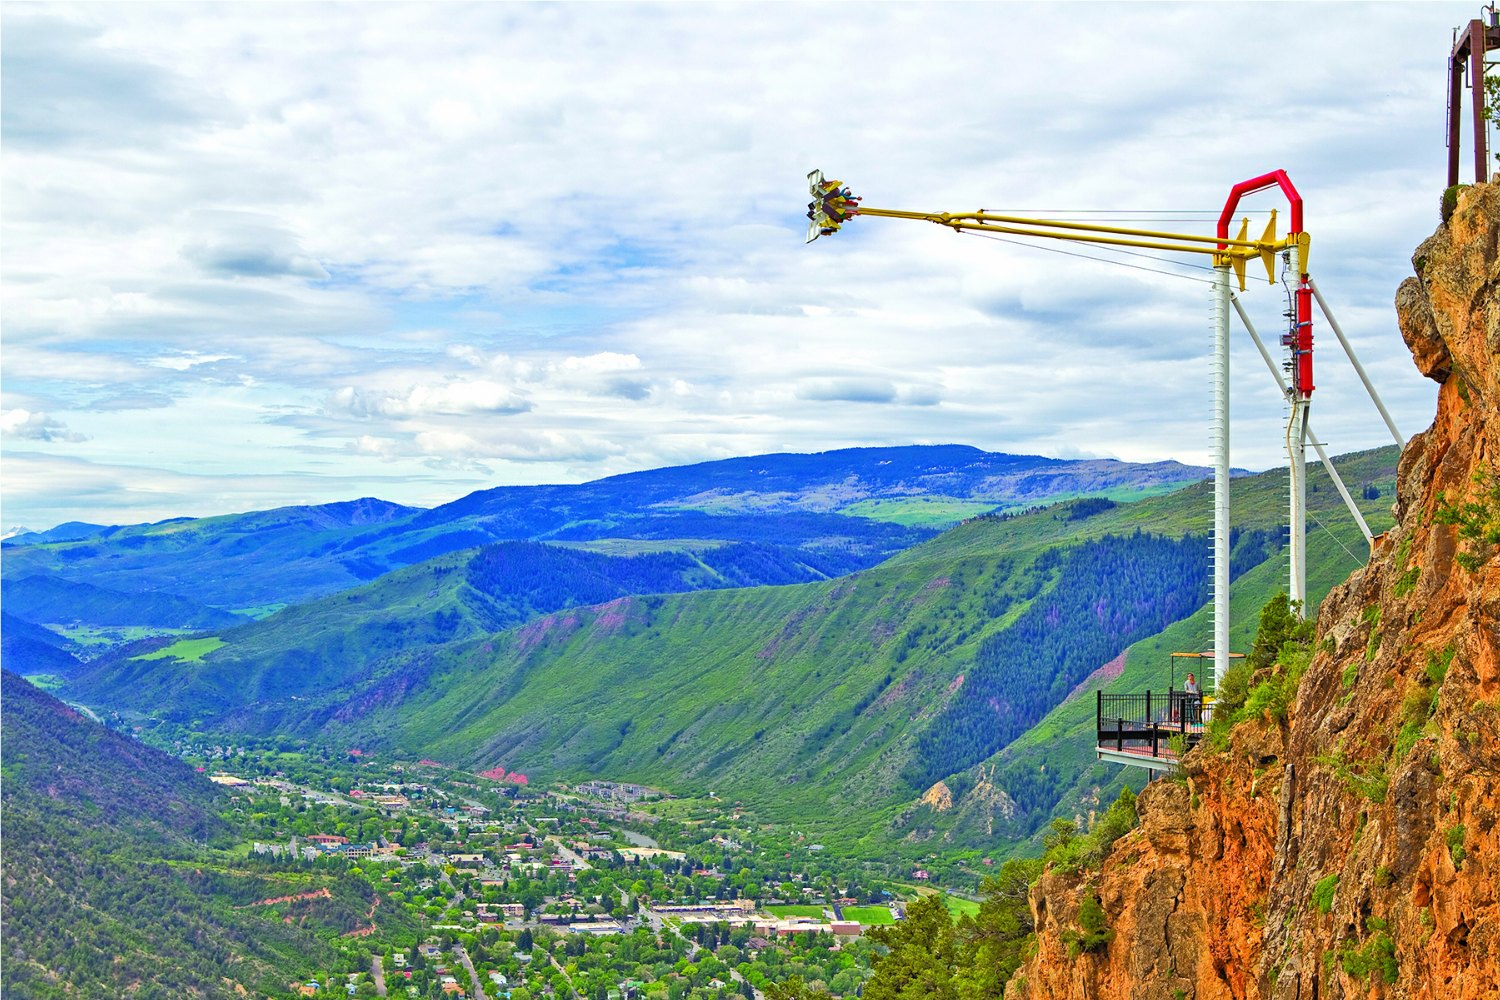 Win A Family Four Pack Giveaway From Glenwood Caverns